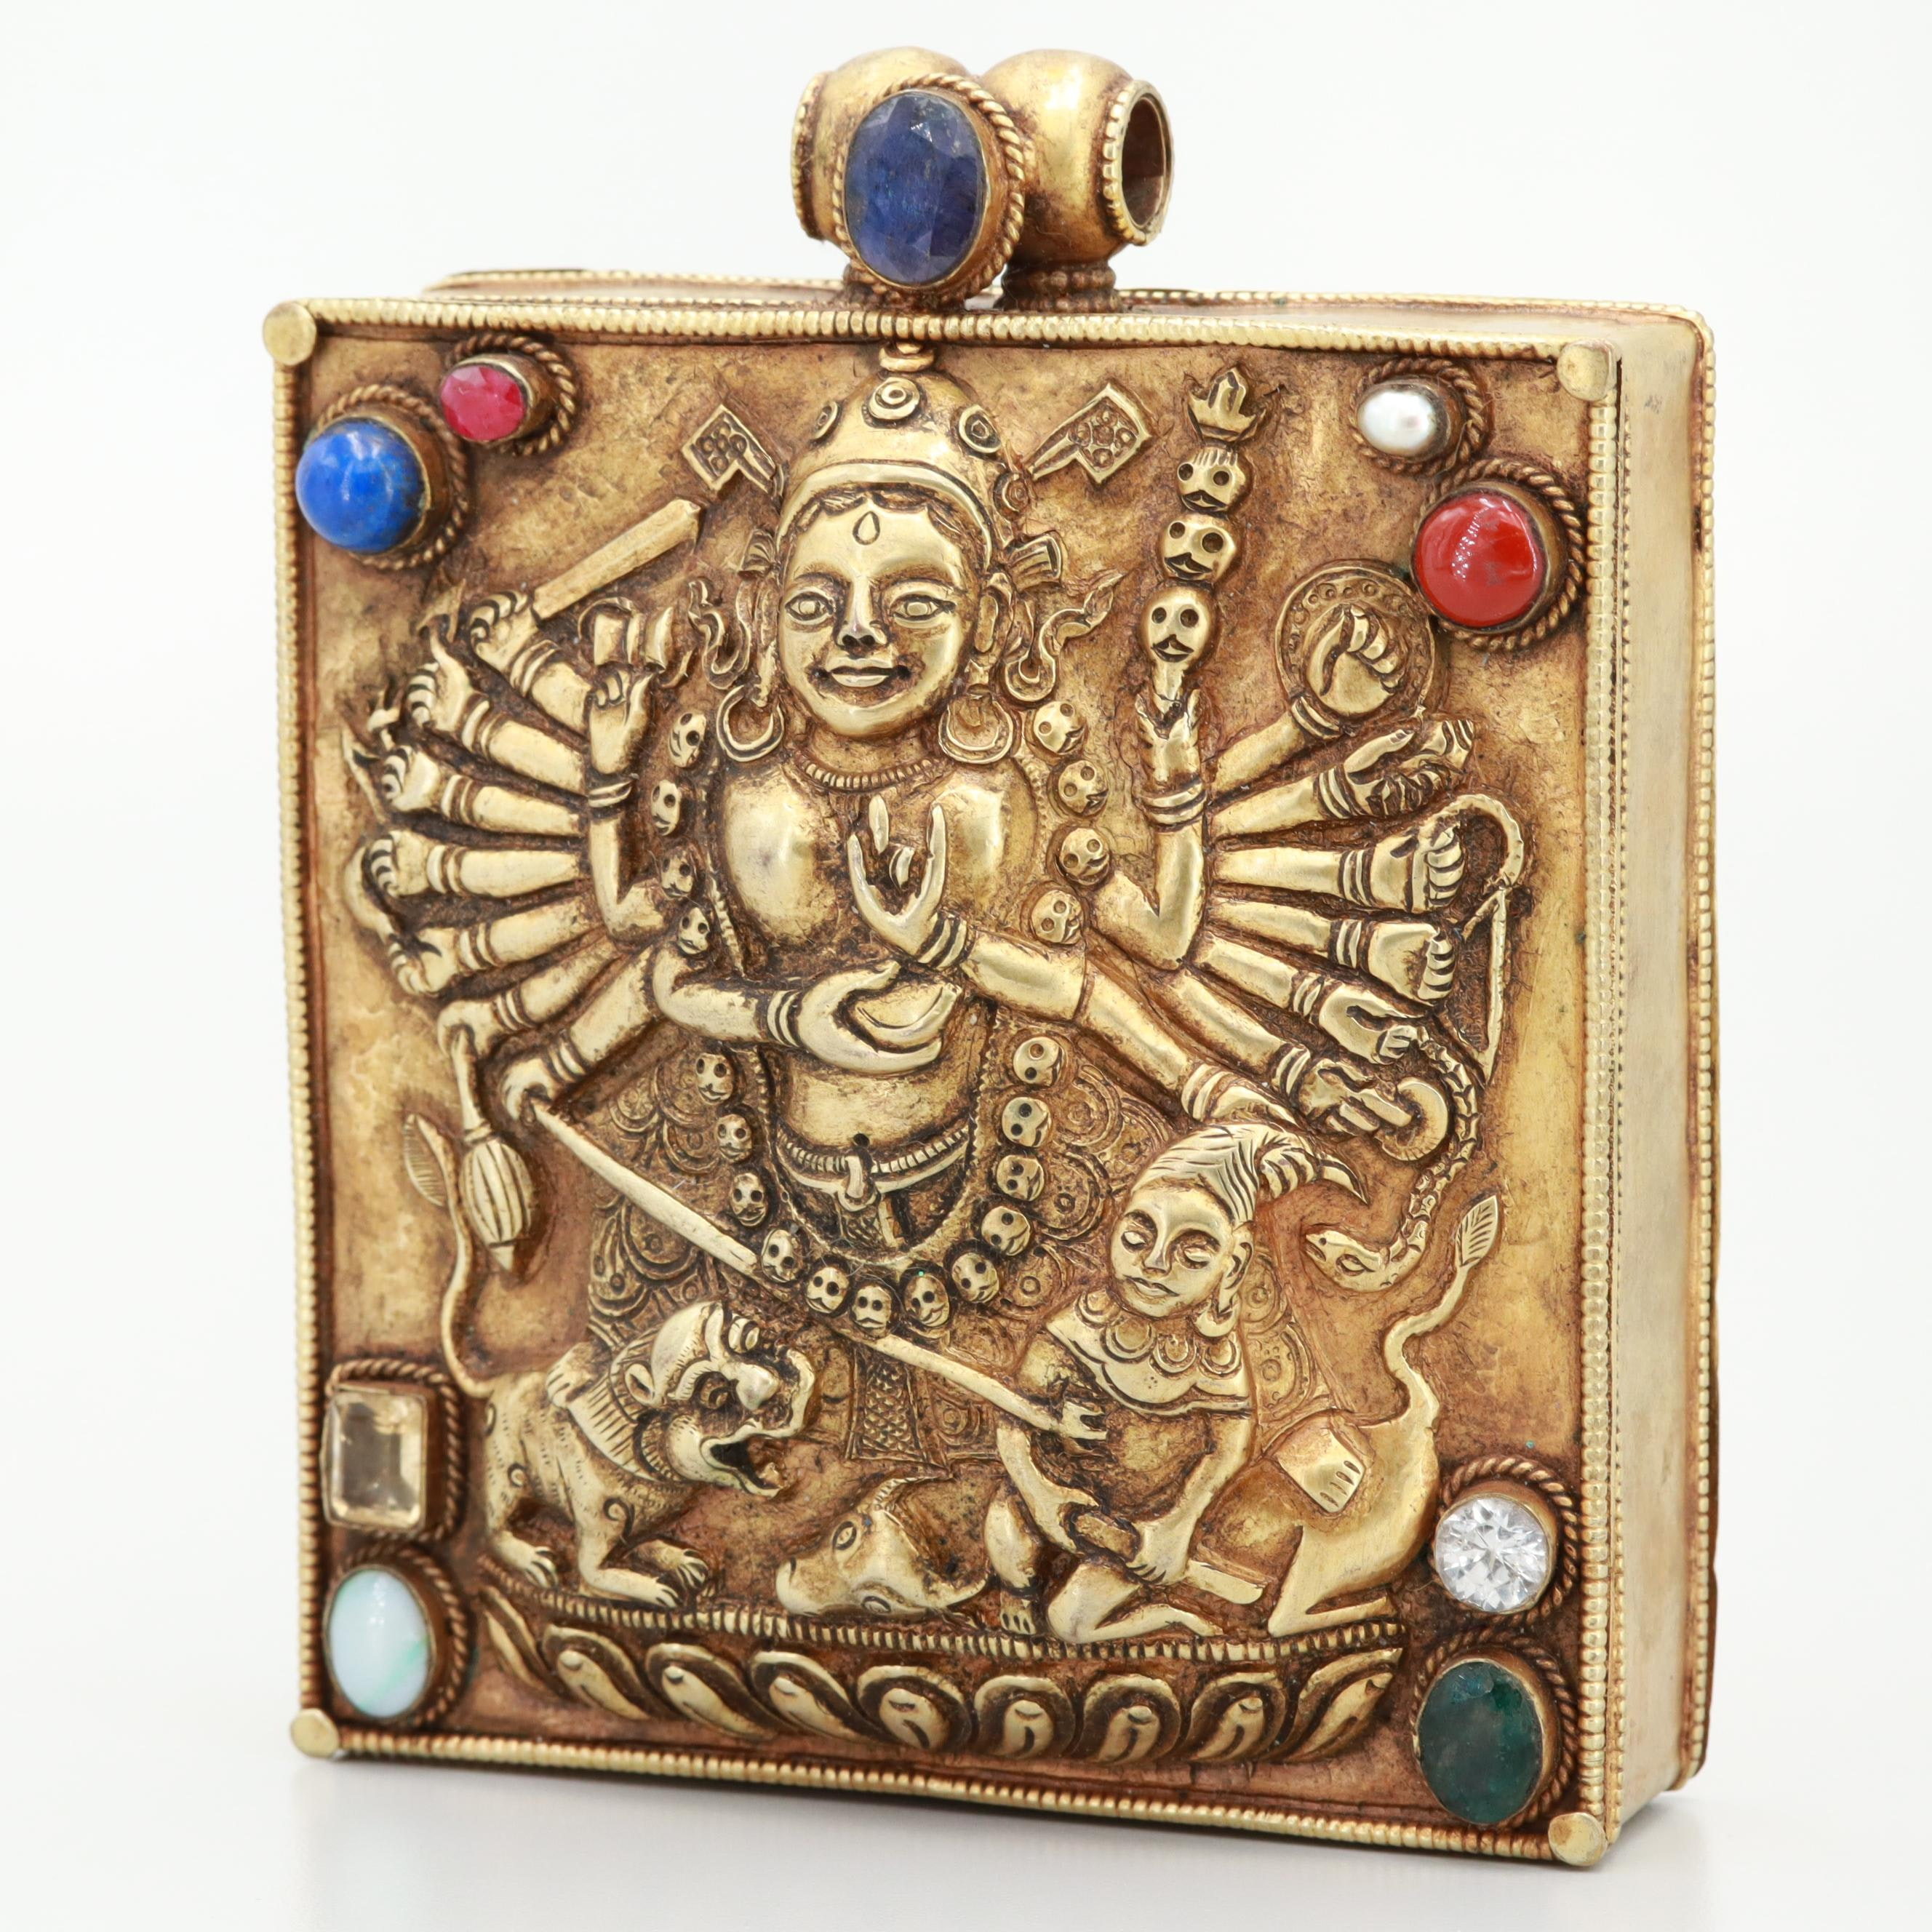 Nepalese-Tibetan Ruby, Sapphire and Emerald Amulet Box